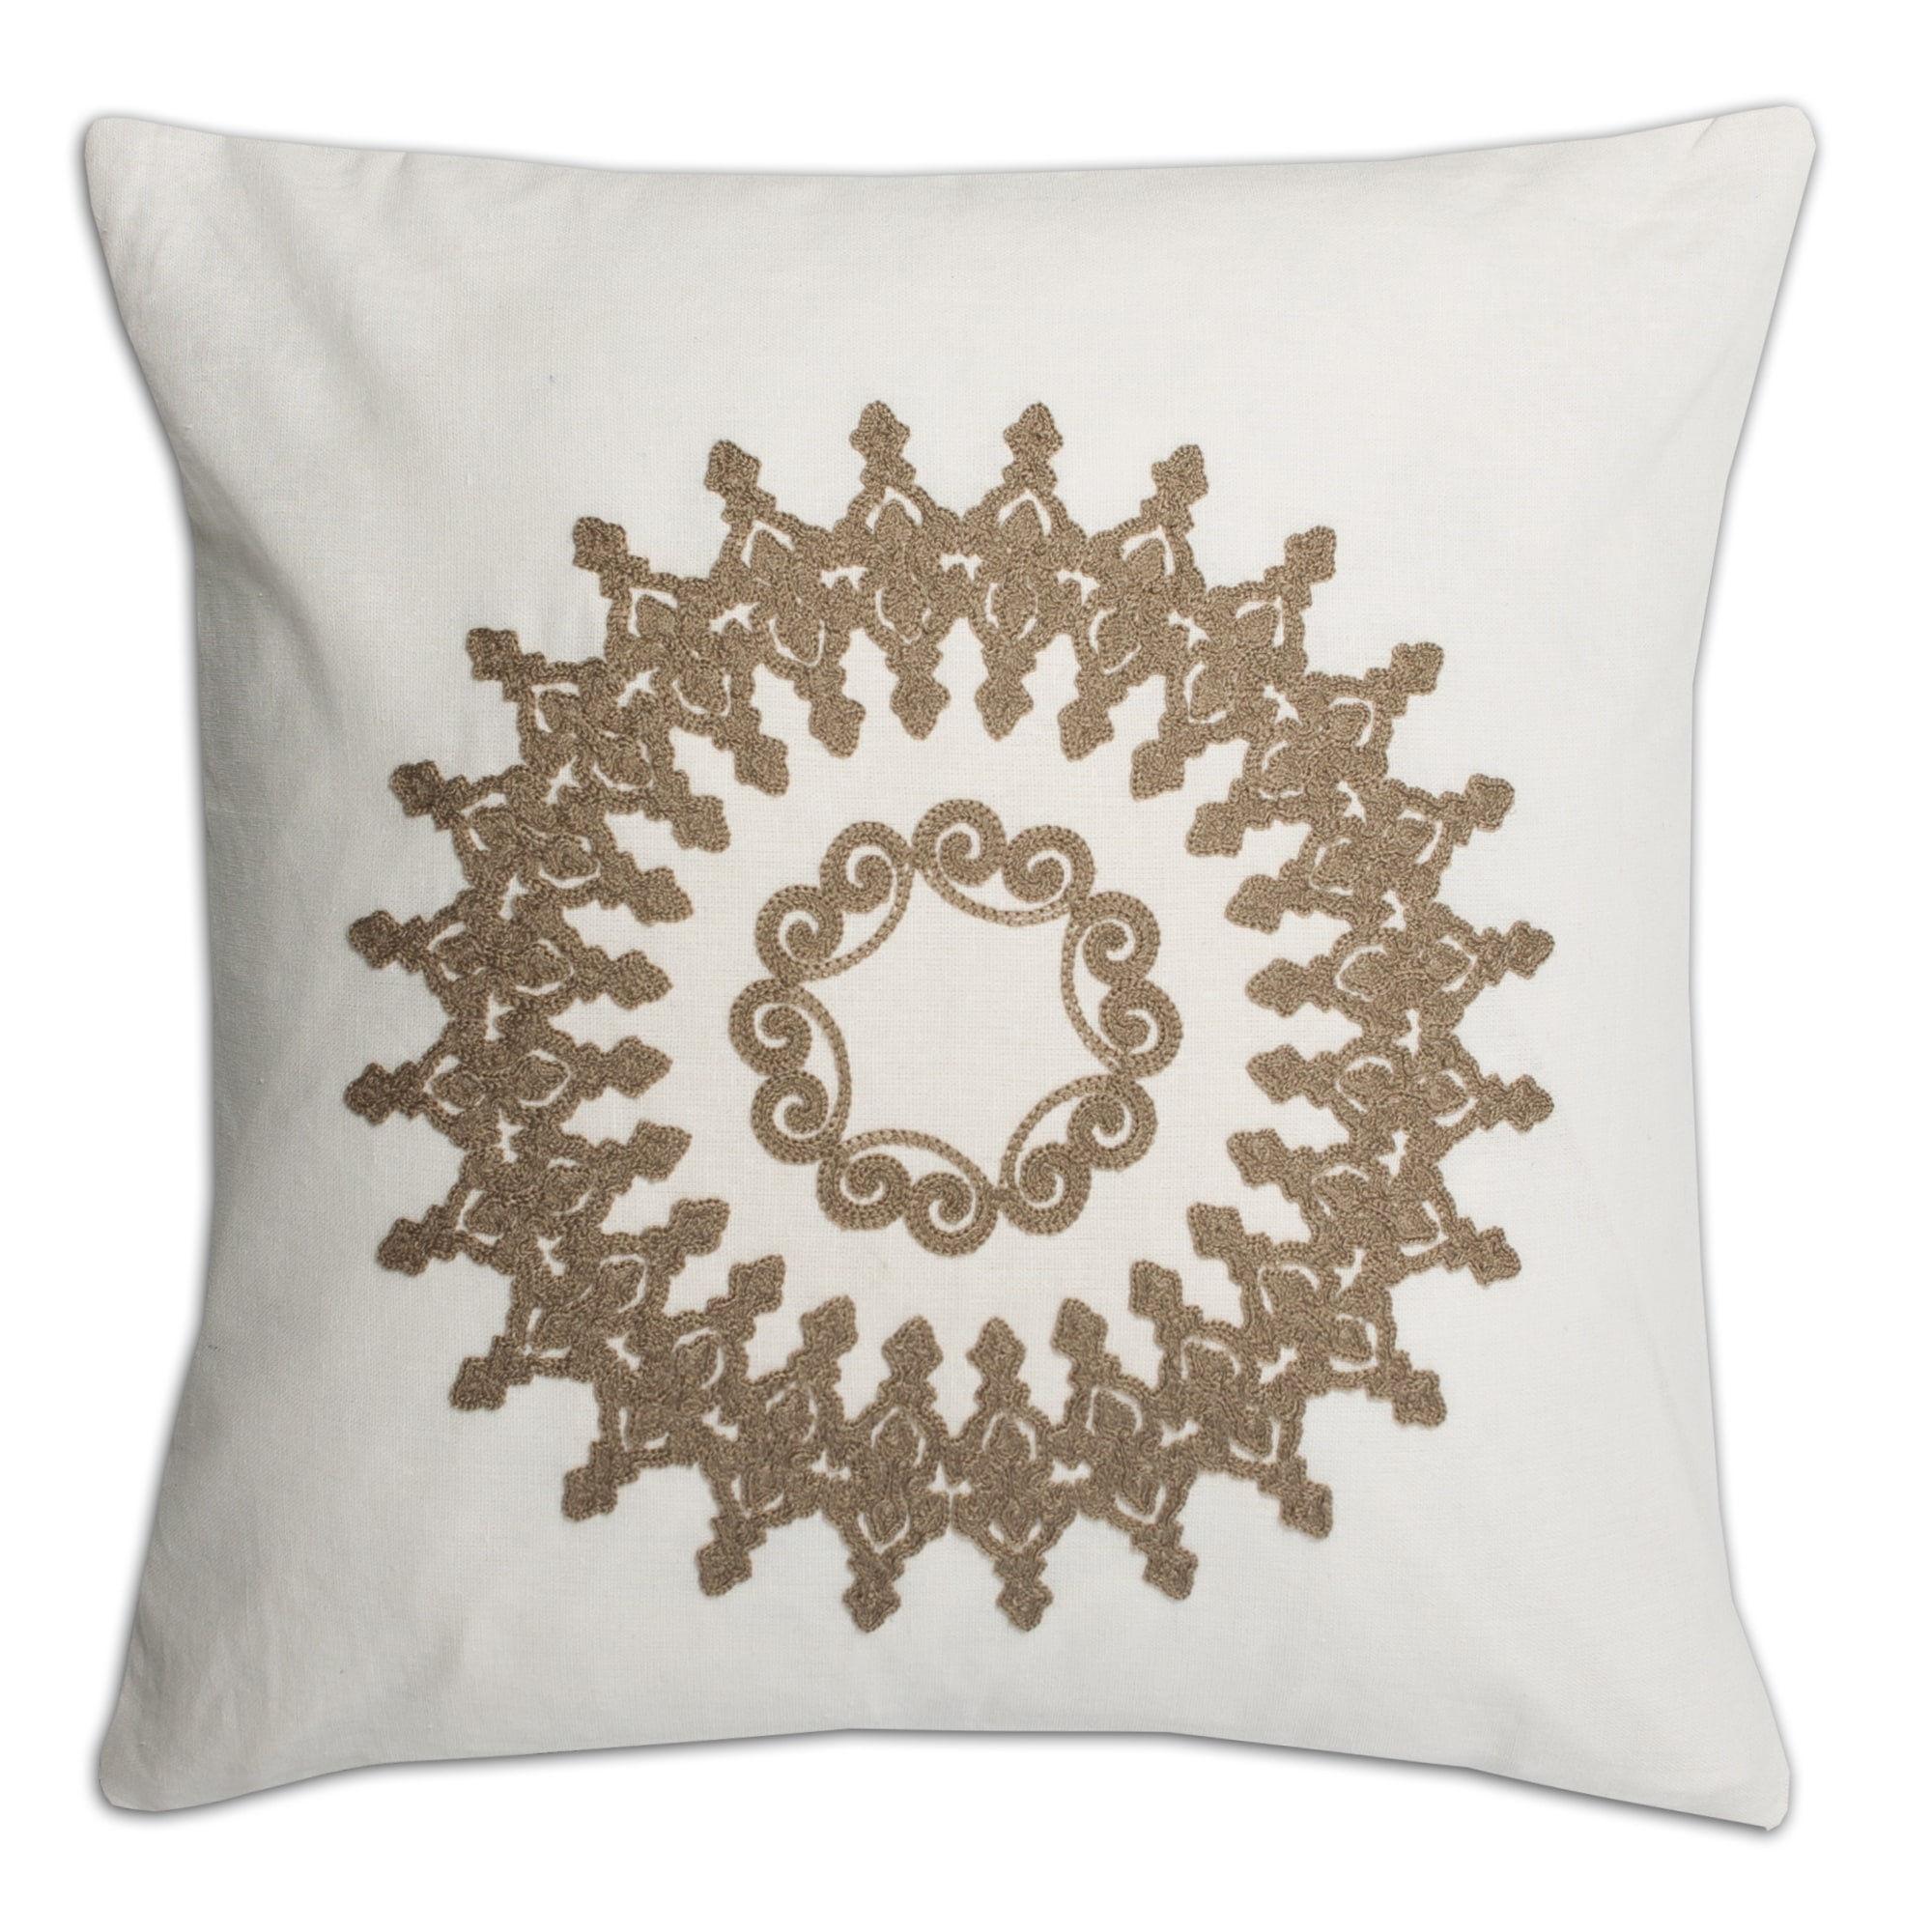 Good Luxury Linen Blend Embroidered Decorative Throw Pillow Shell With Insert  Options   Free Shipping On Orders Over $45   Overstock.com   17914351